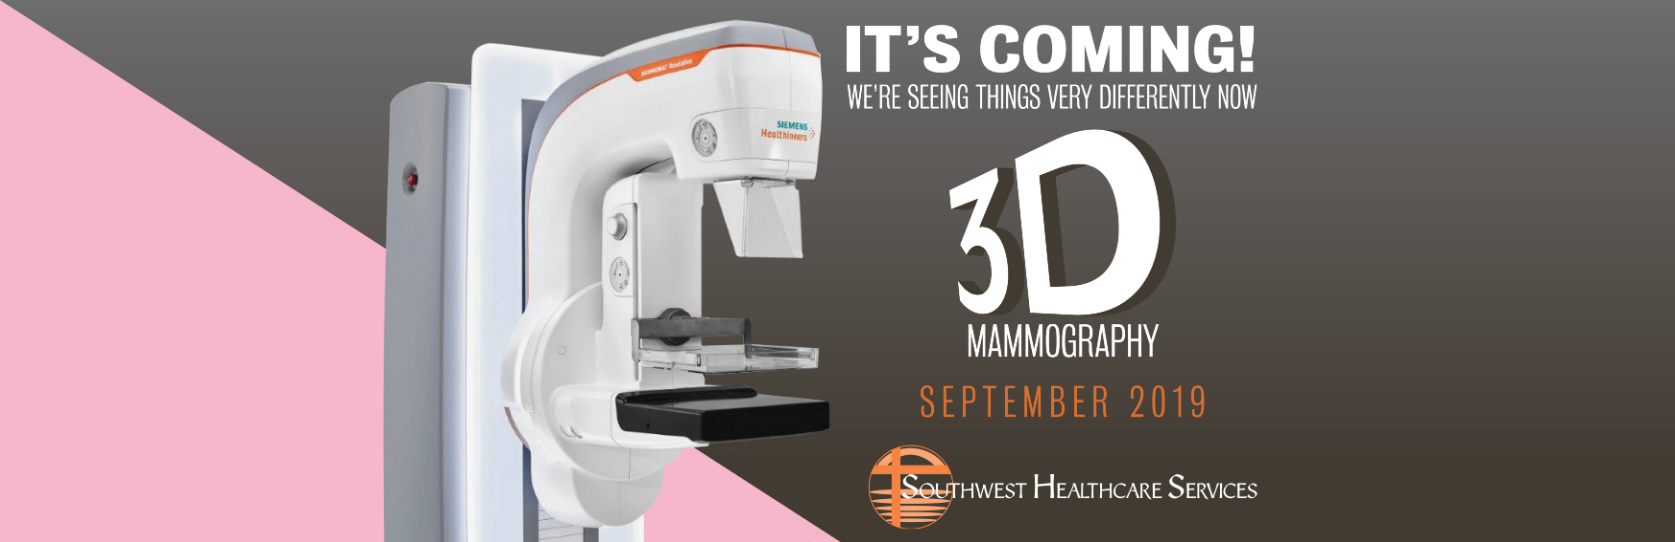 3D Mammo COMING SOON